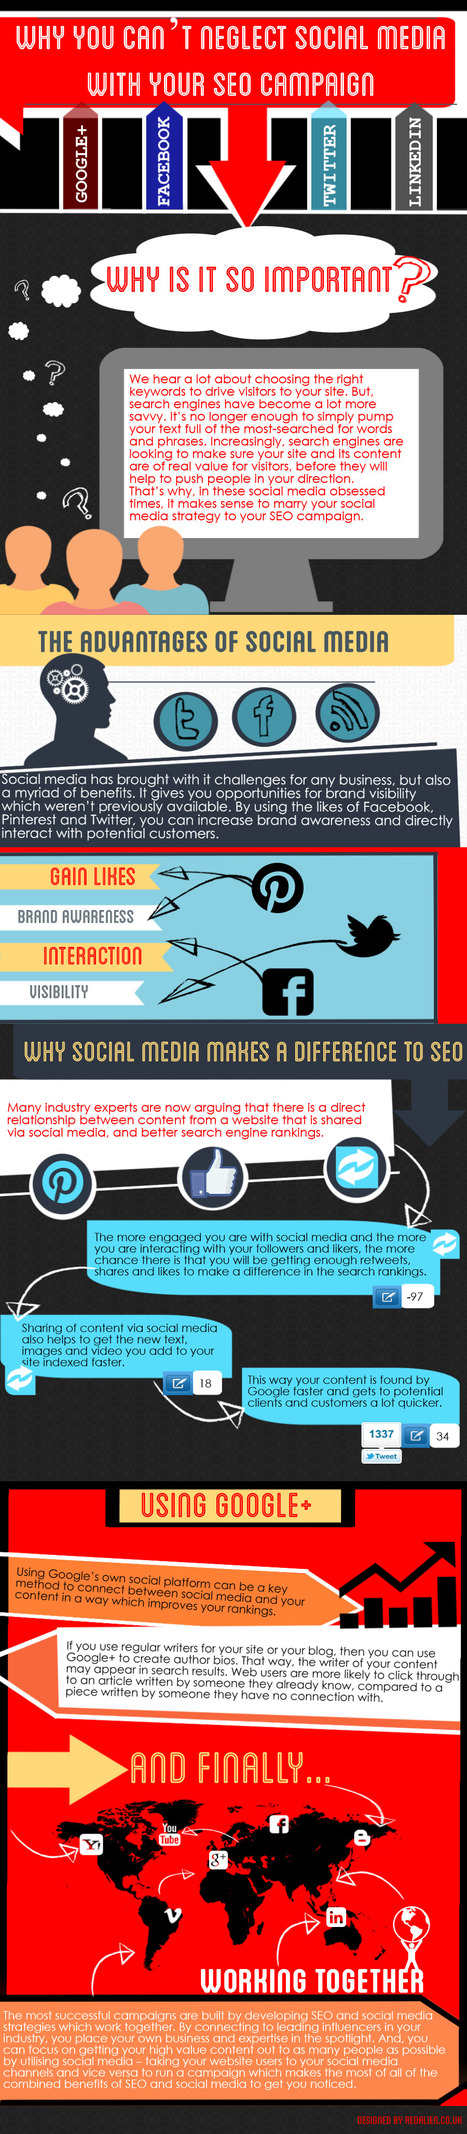 Why you can't neglect social media with SEO campaigns | Self Promotion | Scoop.it